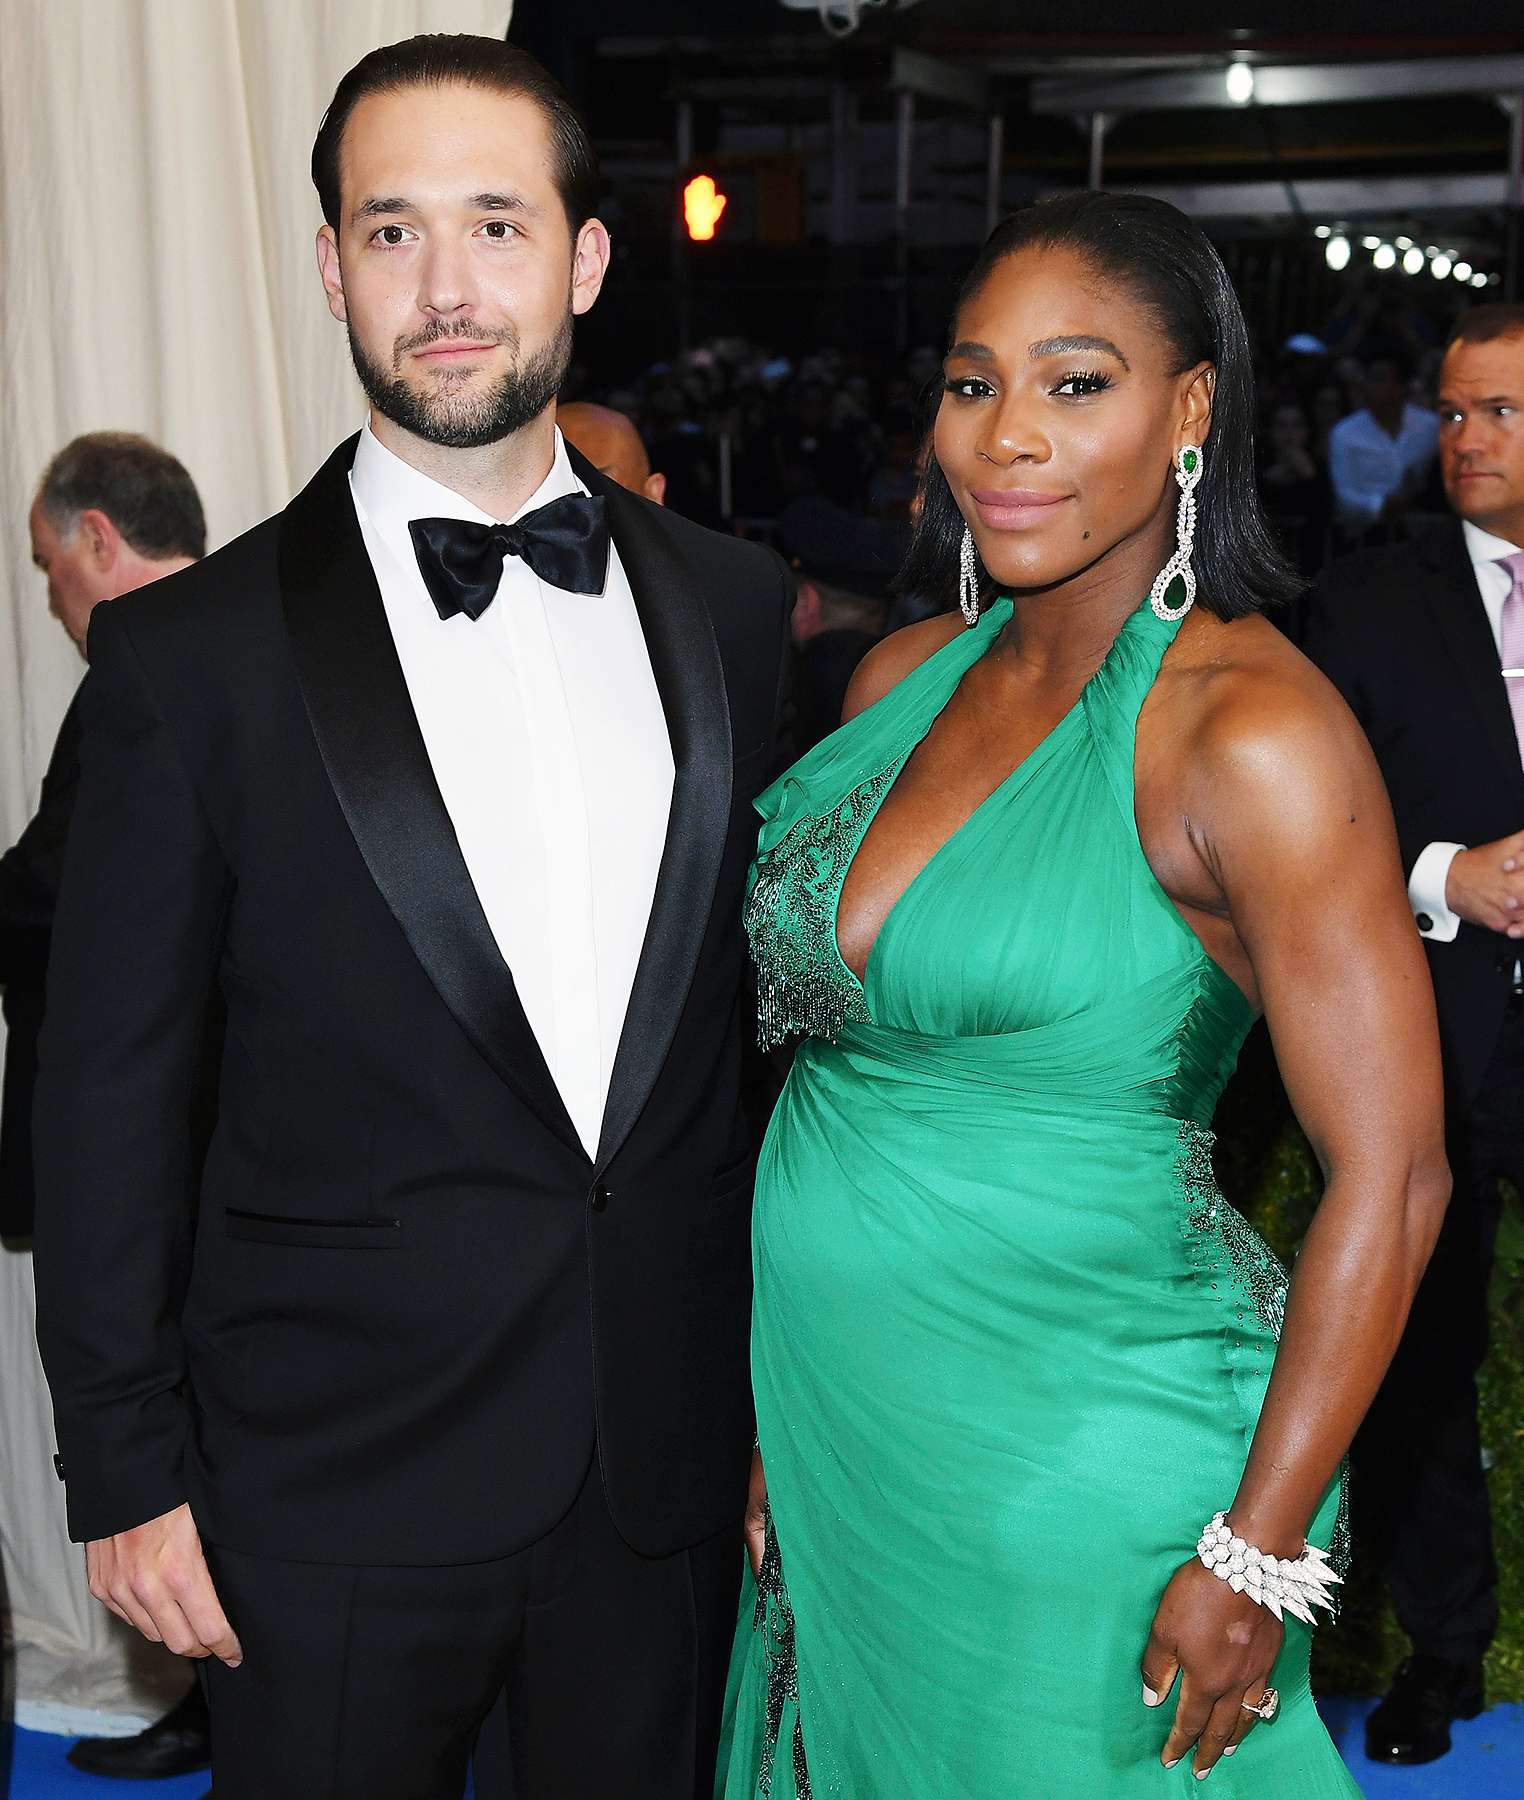 Alexis Ohanian puts up four billboards to praise Serena Williams